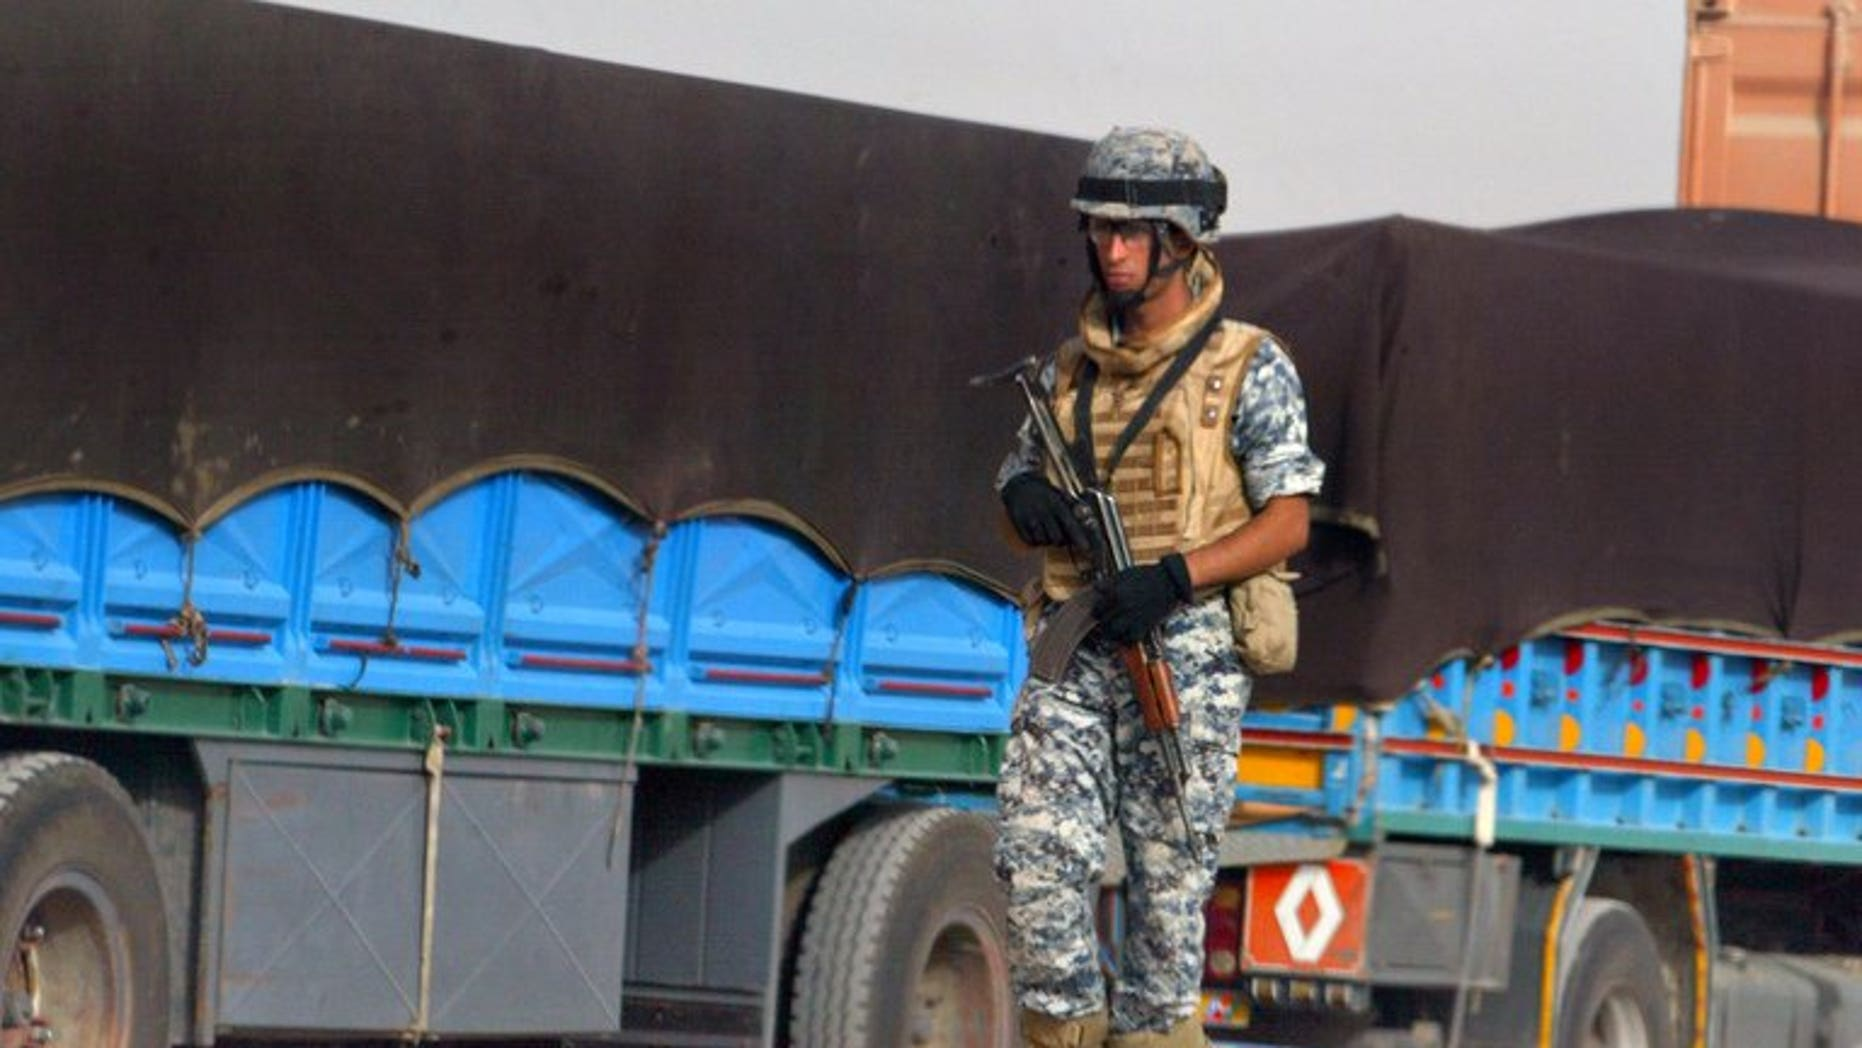 An Iraqi policeman walks past trucks in Amara on June 20, 2008. Gunmen killed 14 truck drivers and stole their vehicles on a highway north of Baghdad on Thursday, while dozens of other militants attacked a nearby town, a local administrative official said.